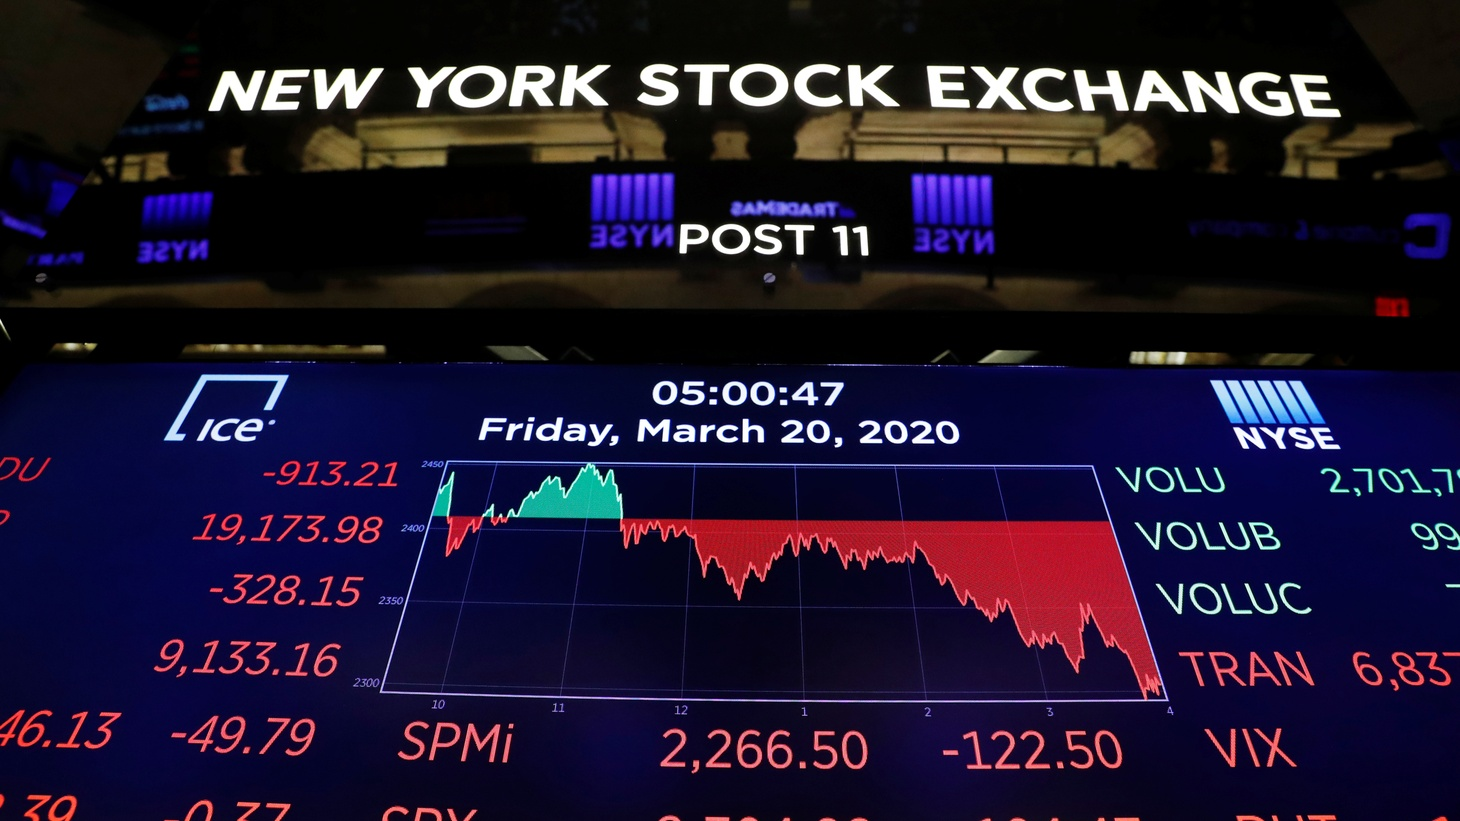 Numbers are displayed above the floor of the New York Stock Exchange (NYSE), which stands empty as the building prepares to close indefinitely due to the COVID-19 outbreak in New York, U.S., March 20, 2020.